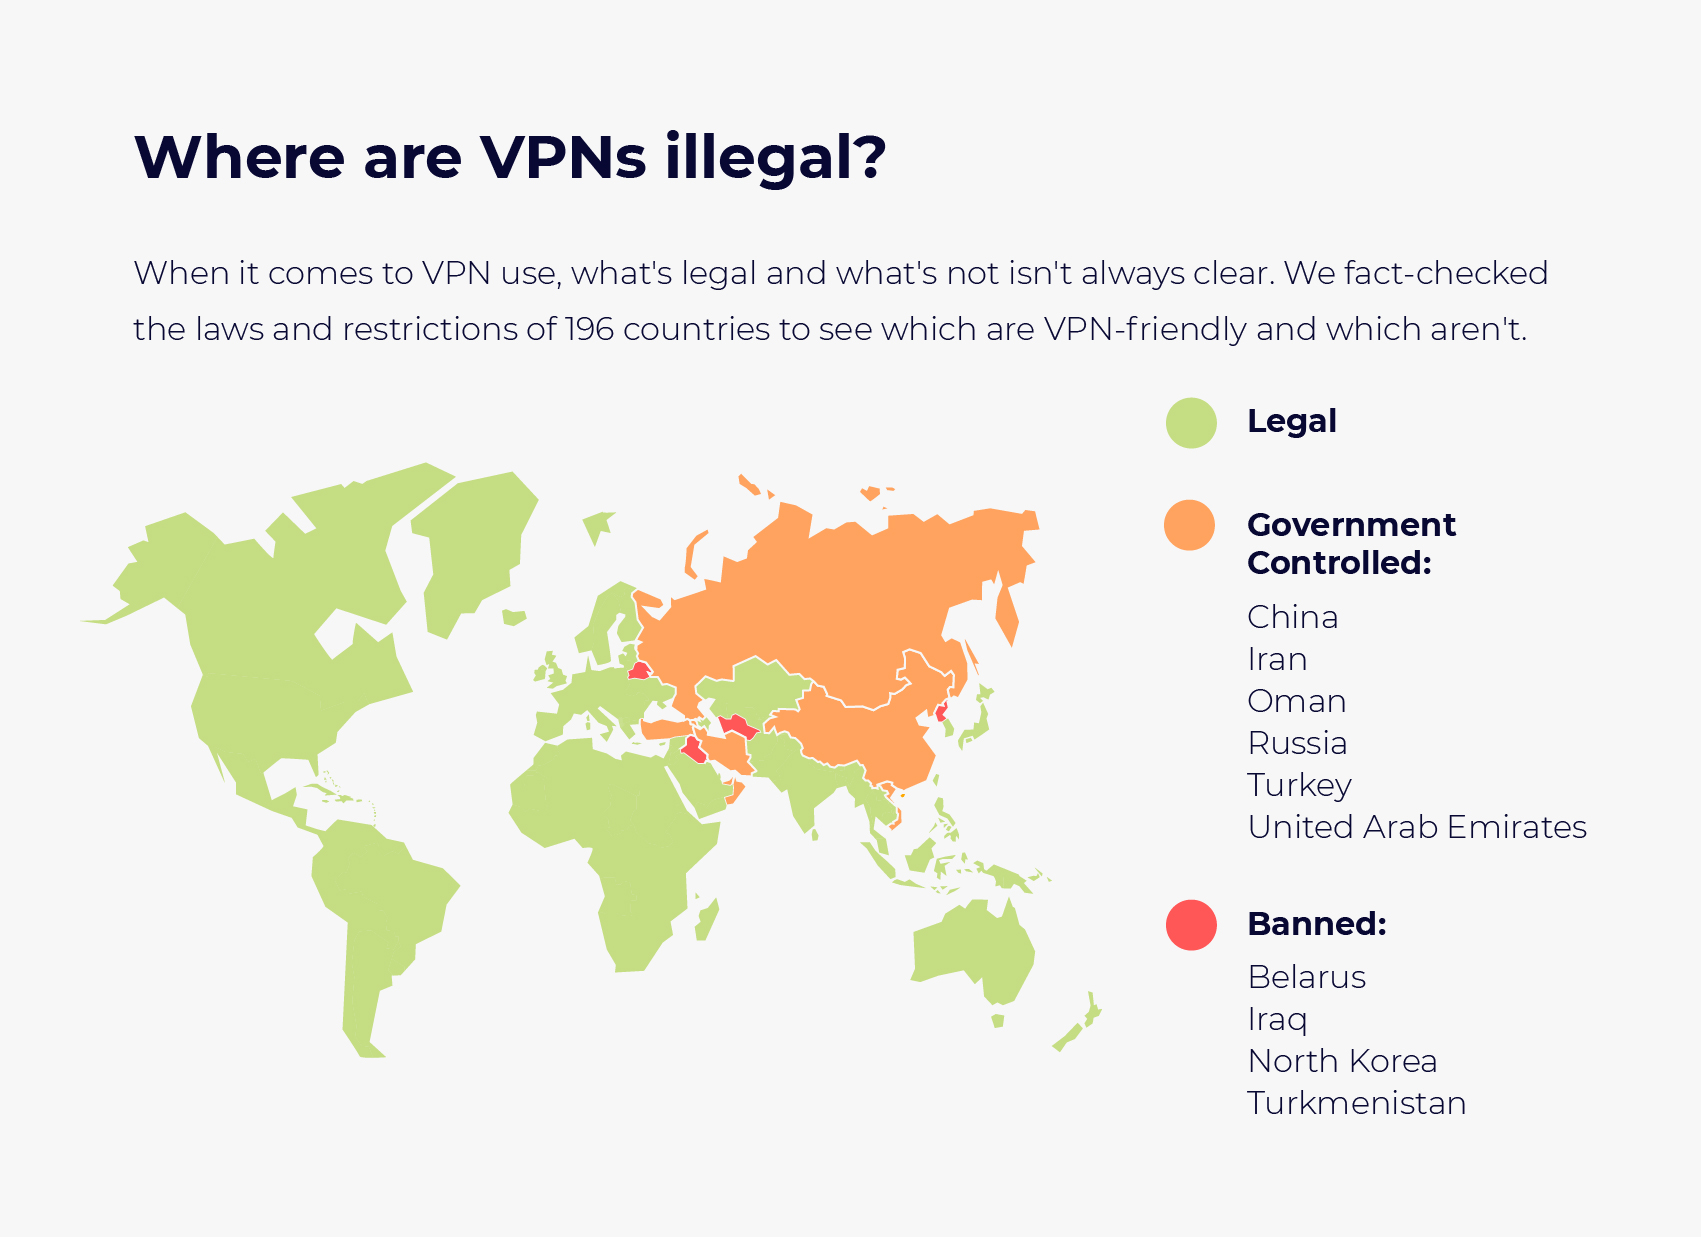 Is VPN legaal in uw land?